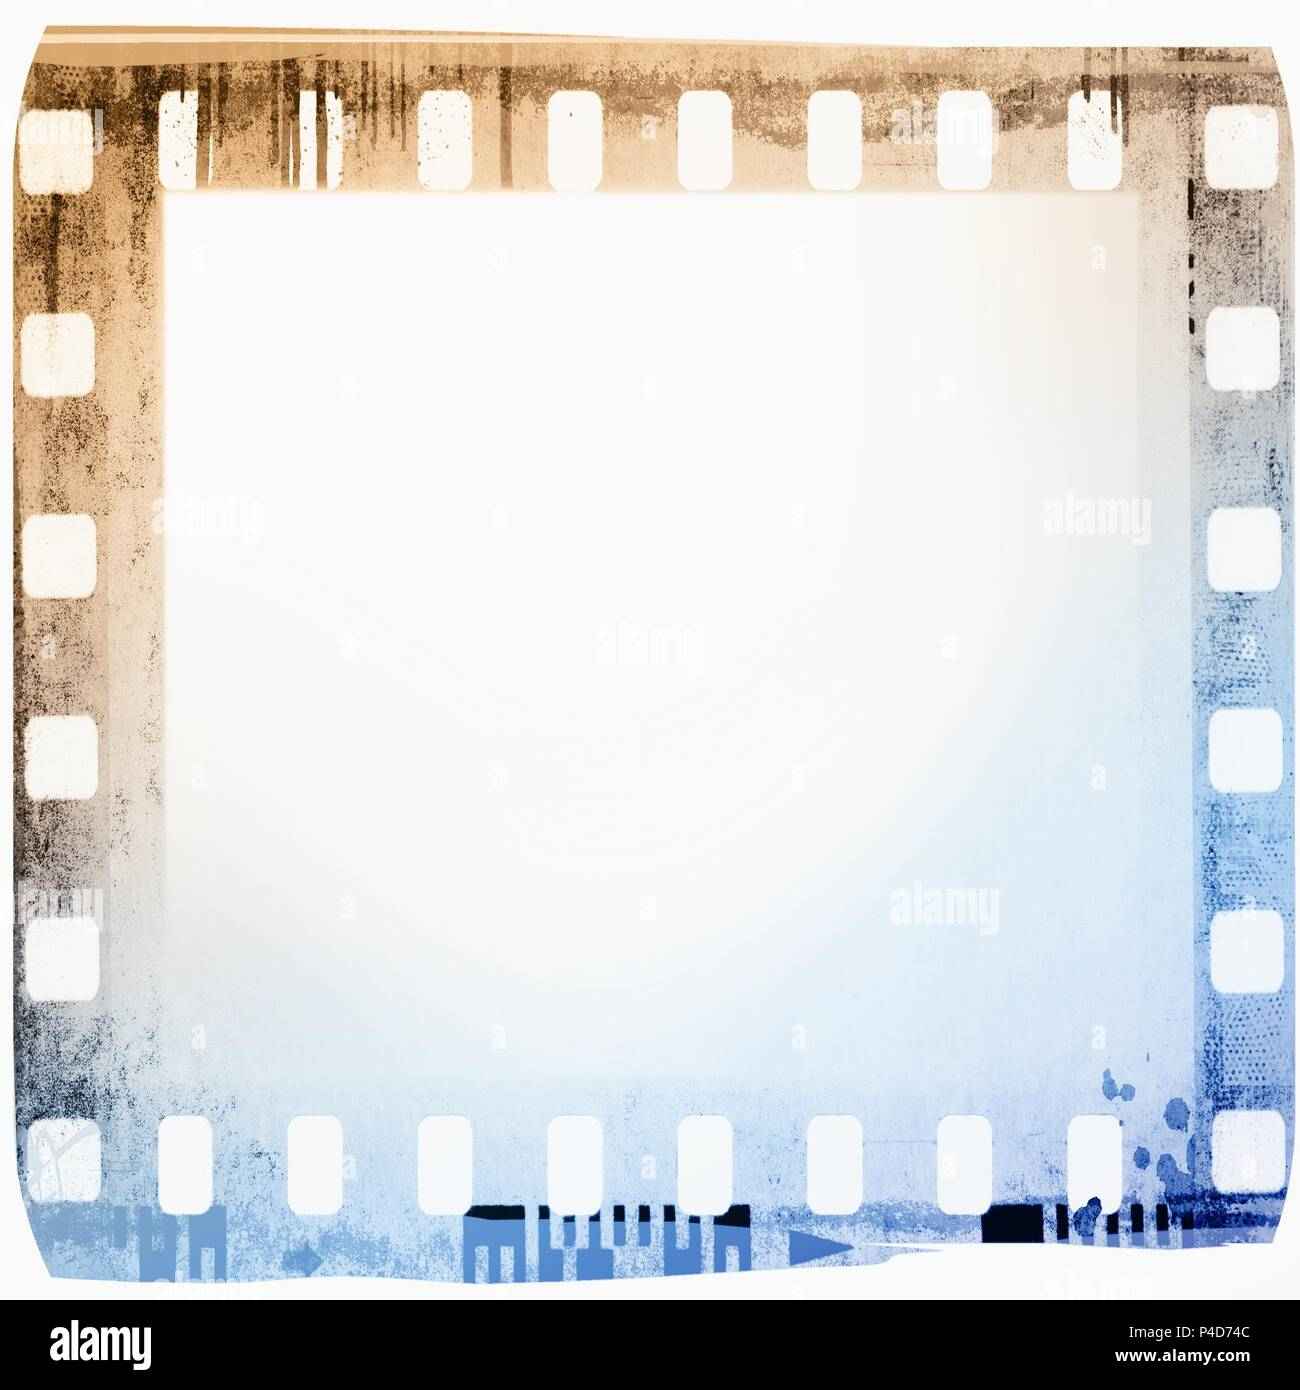 Vintage film strip frame in blue and sepia tones. Stock Photo